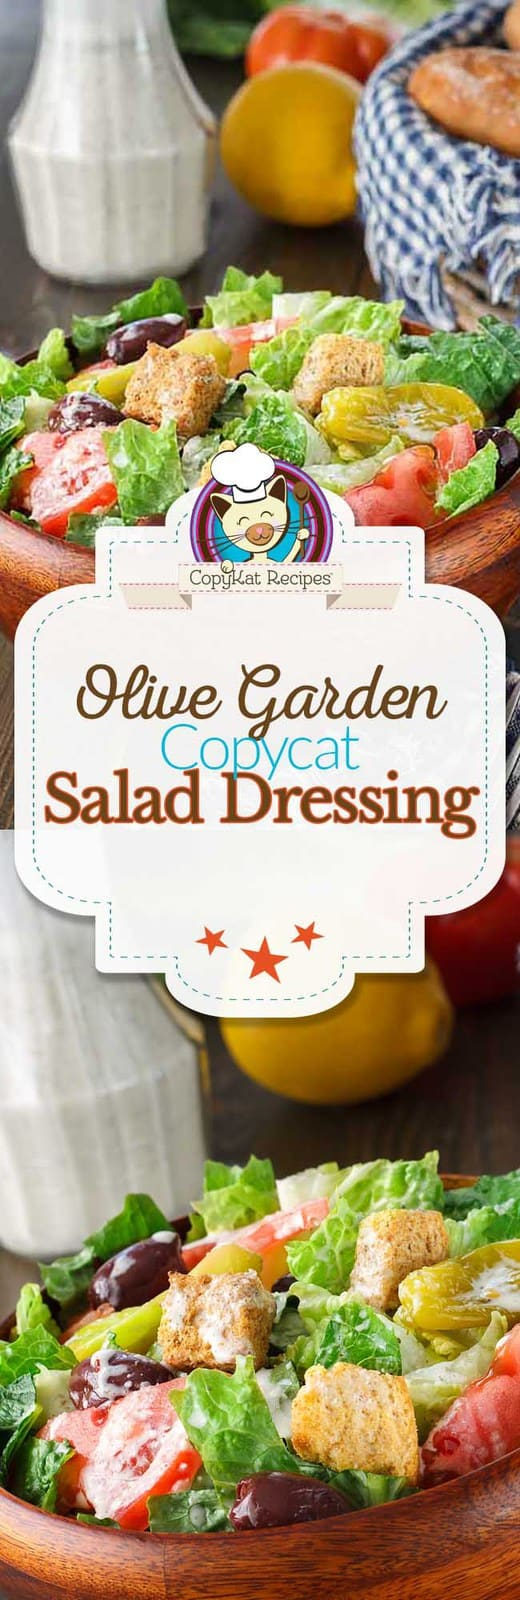 Olive garden salad dressing recipe for Olive garden salad dressing ingredients